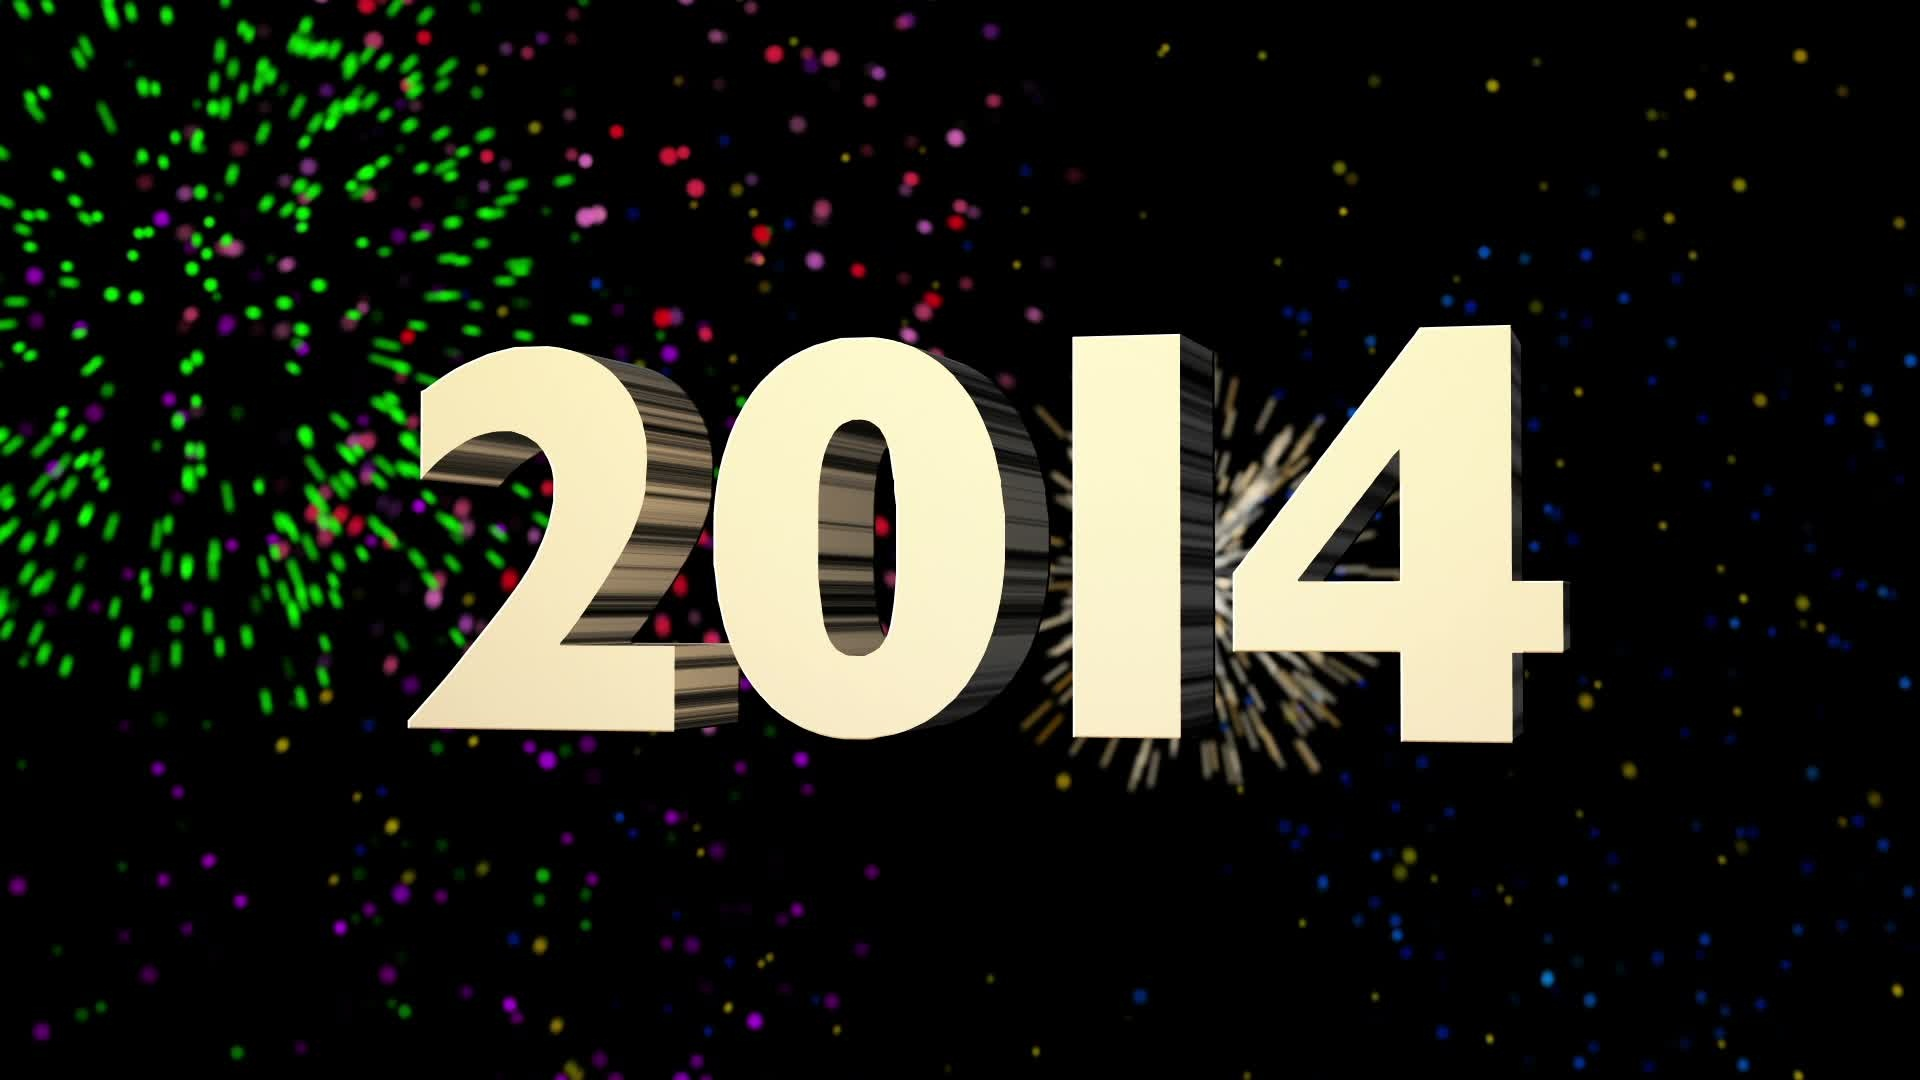 Happy new year 2014 video showbiz411 happy new year 2014 video voltagebd Image collections